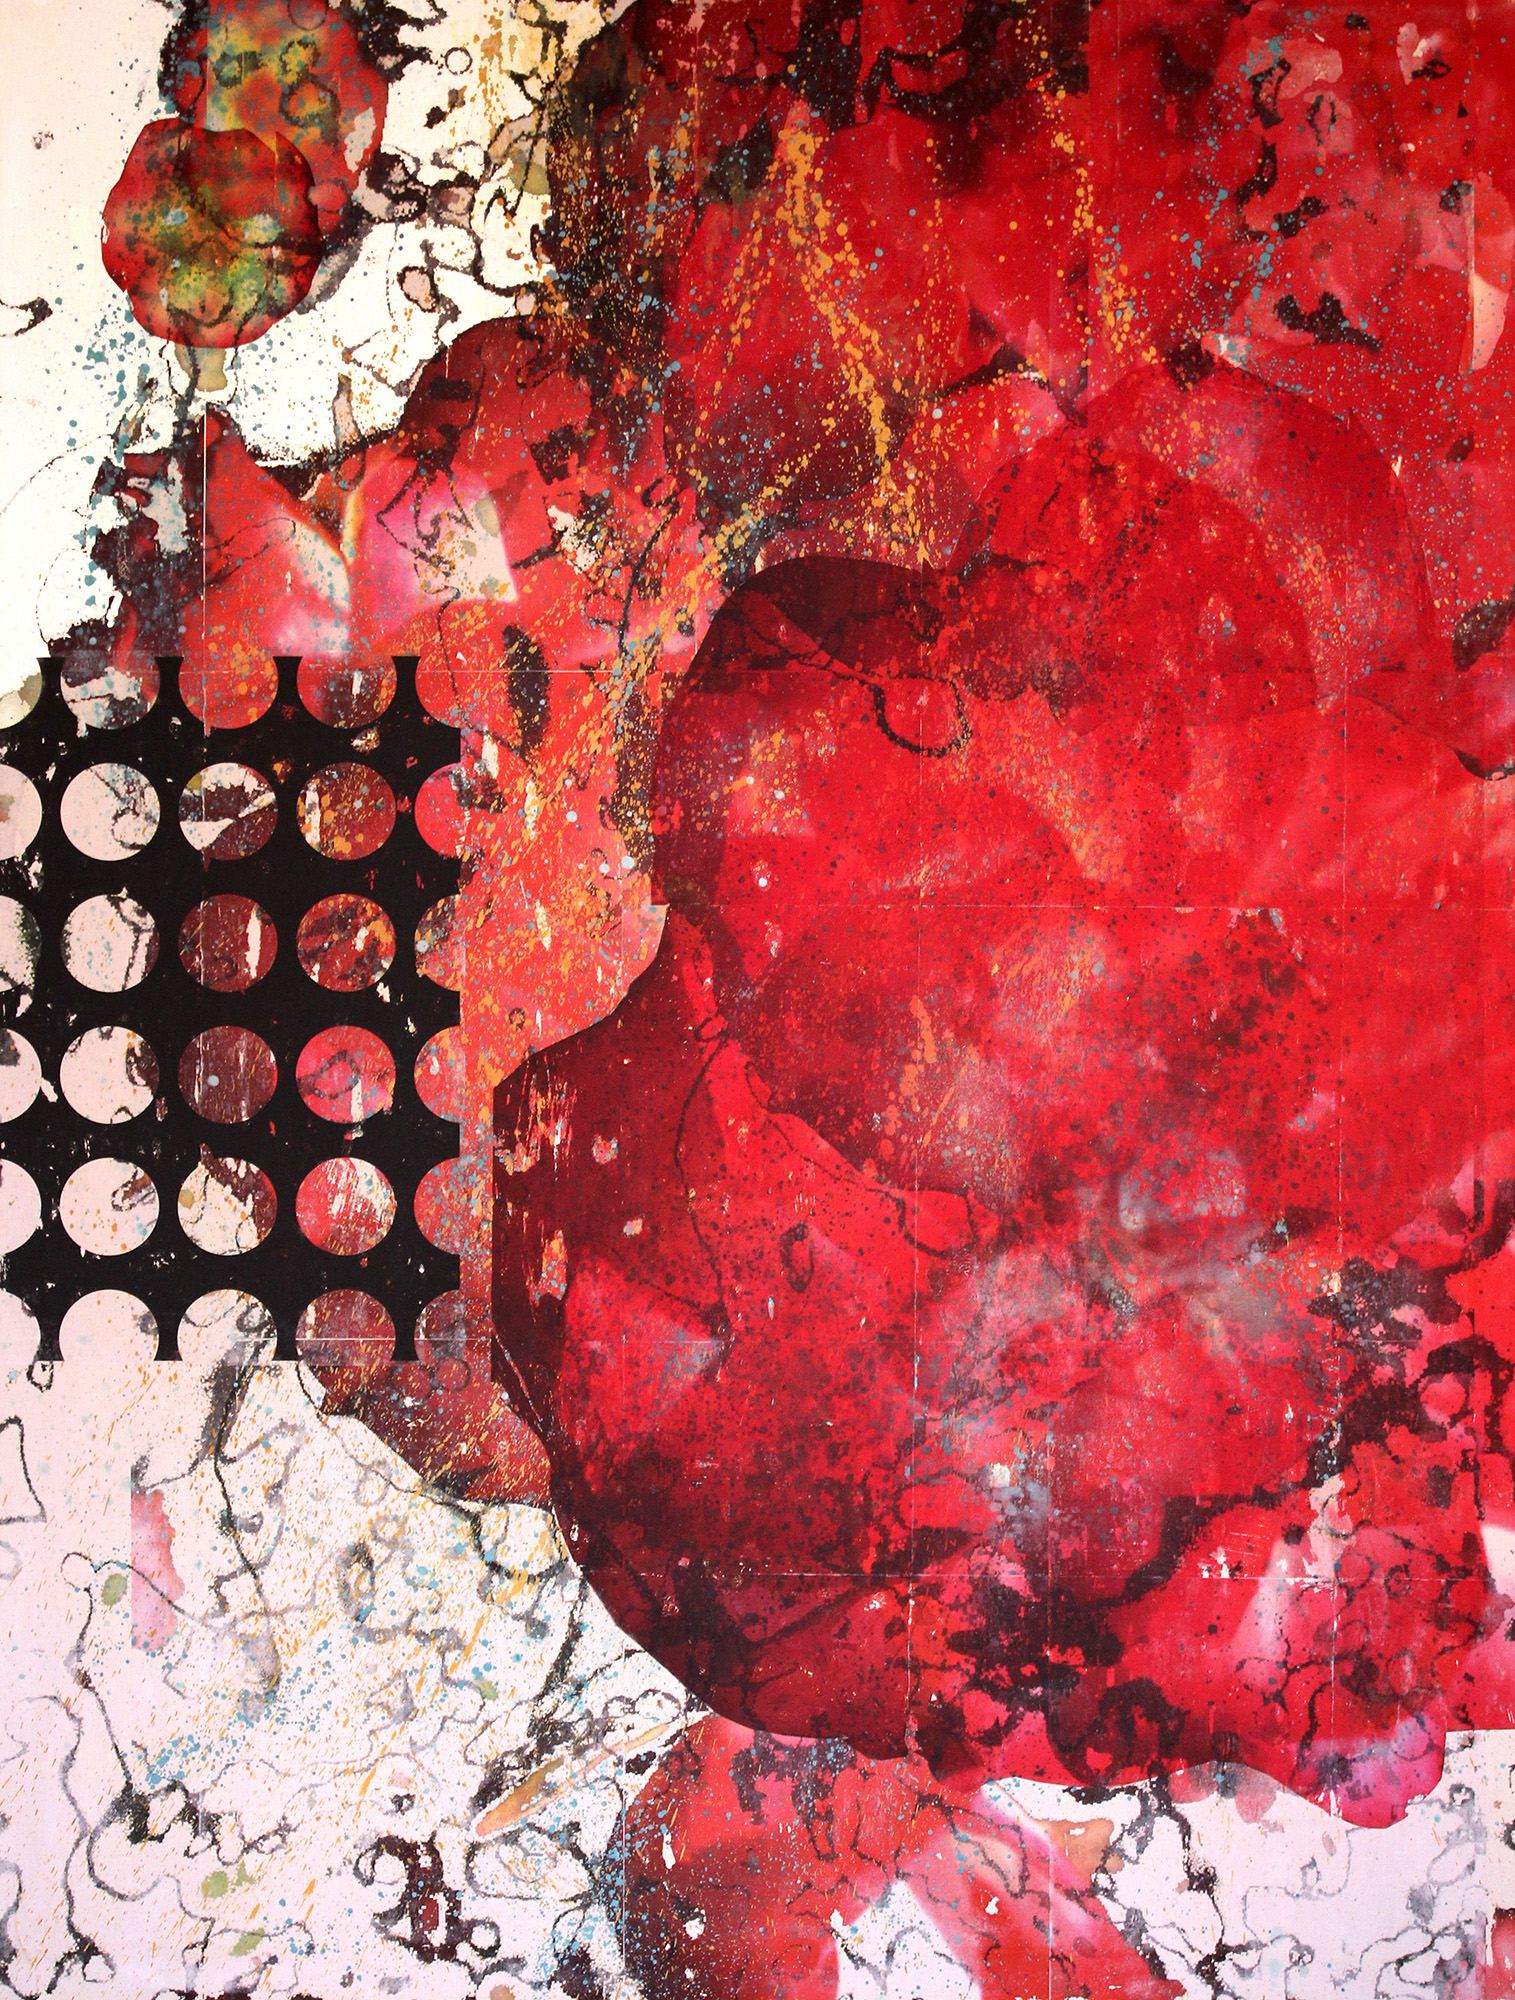 Love Bomb, 2015, mixed media on canvas, 48 x 36 in, SOLD